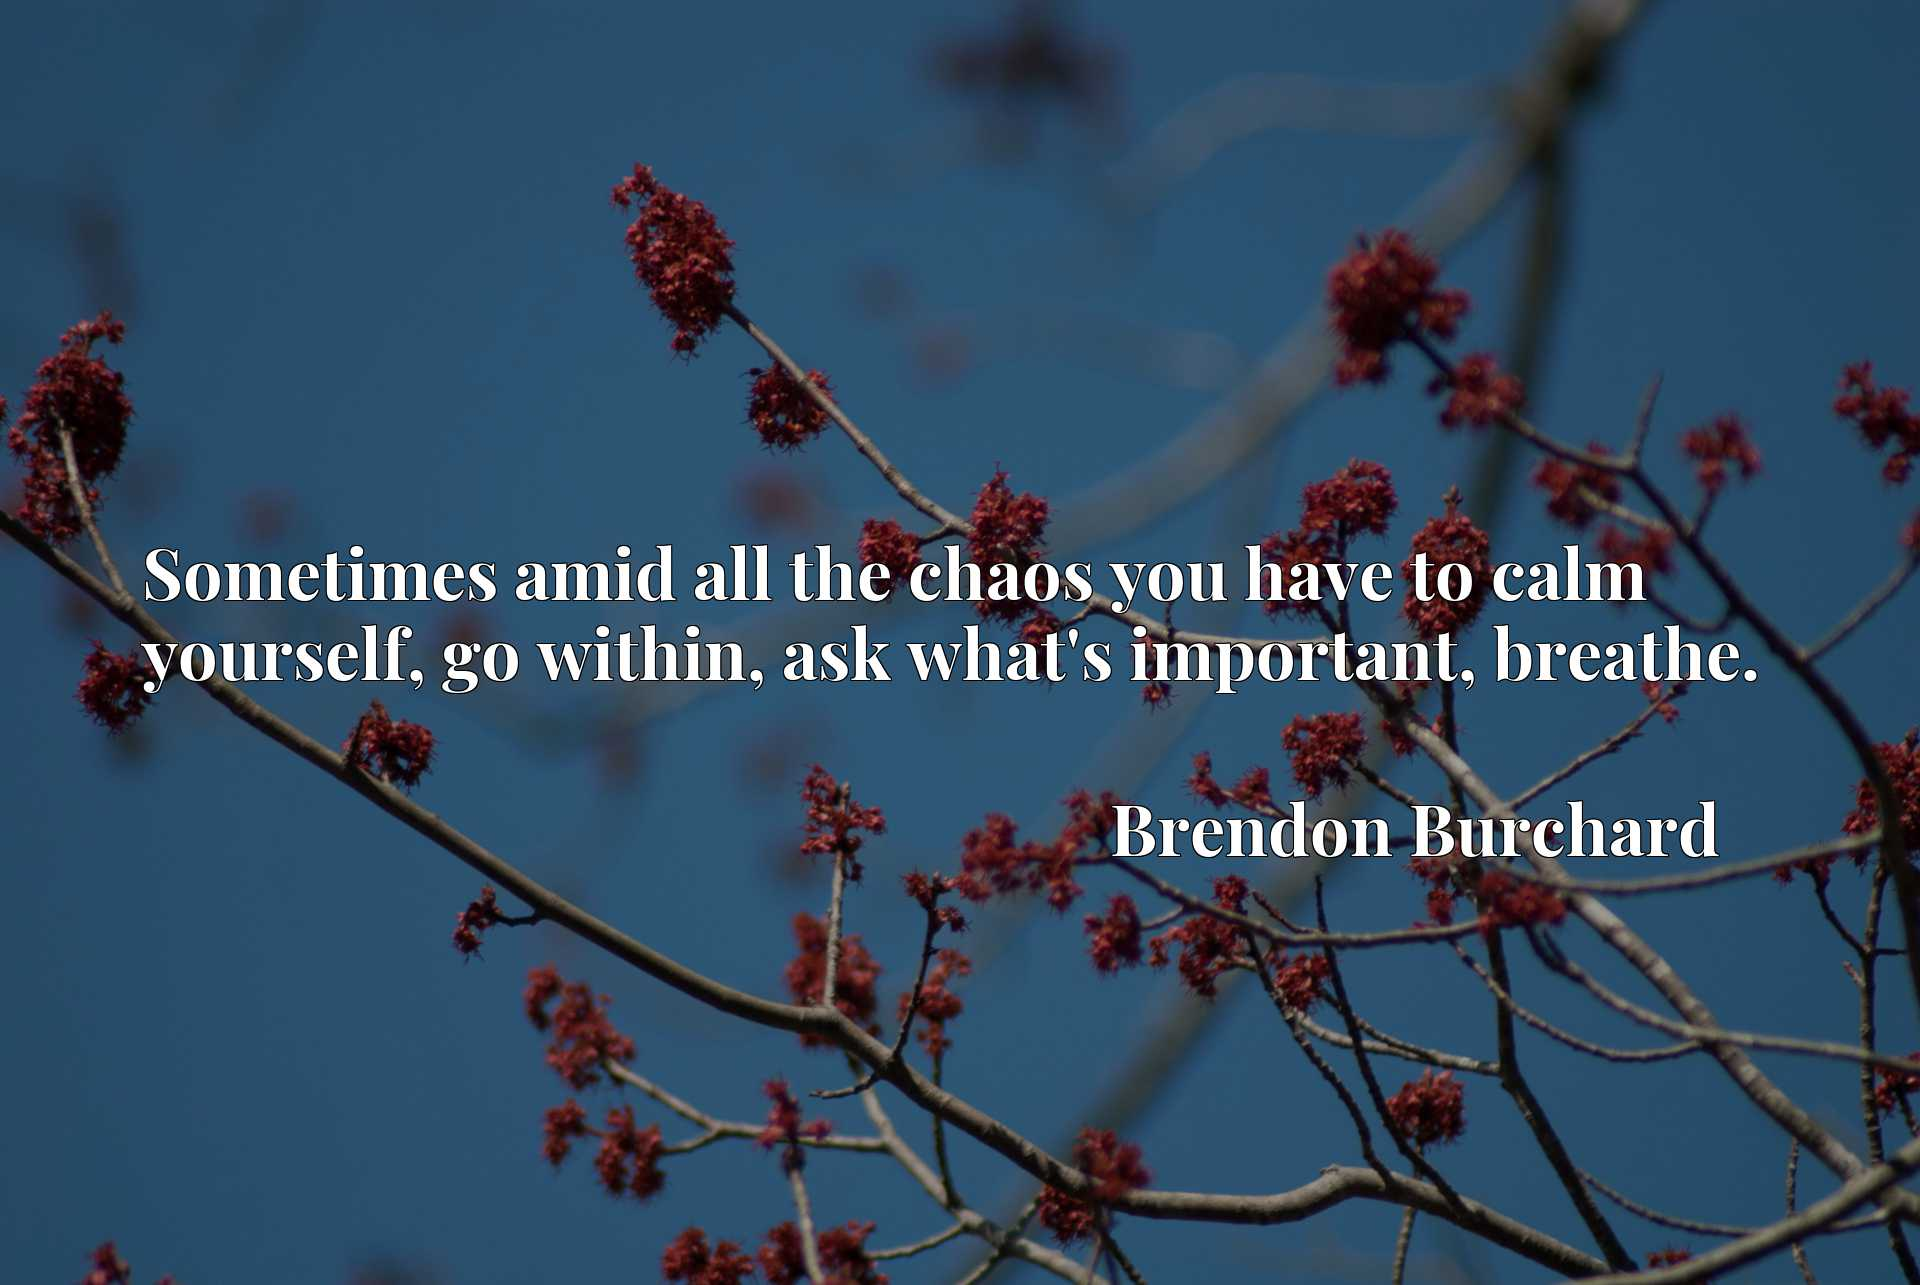 Sometimes amid all the chaos you have to calm yourself, go within, ask what's important, breathe.